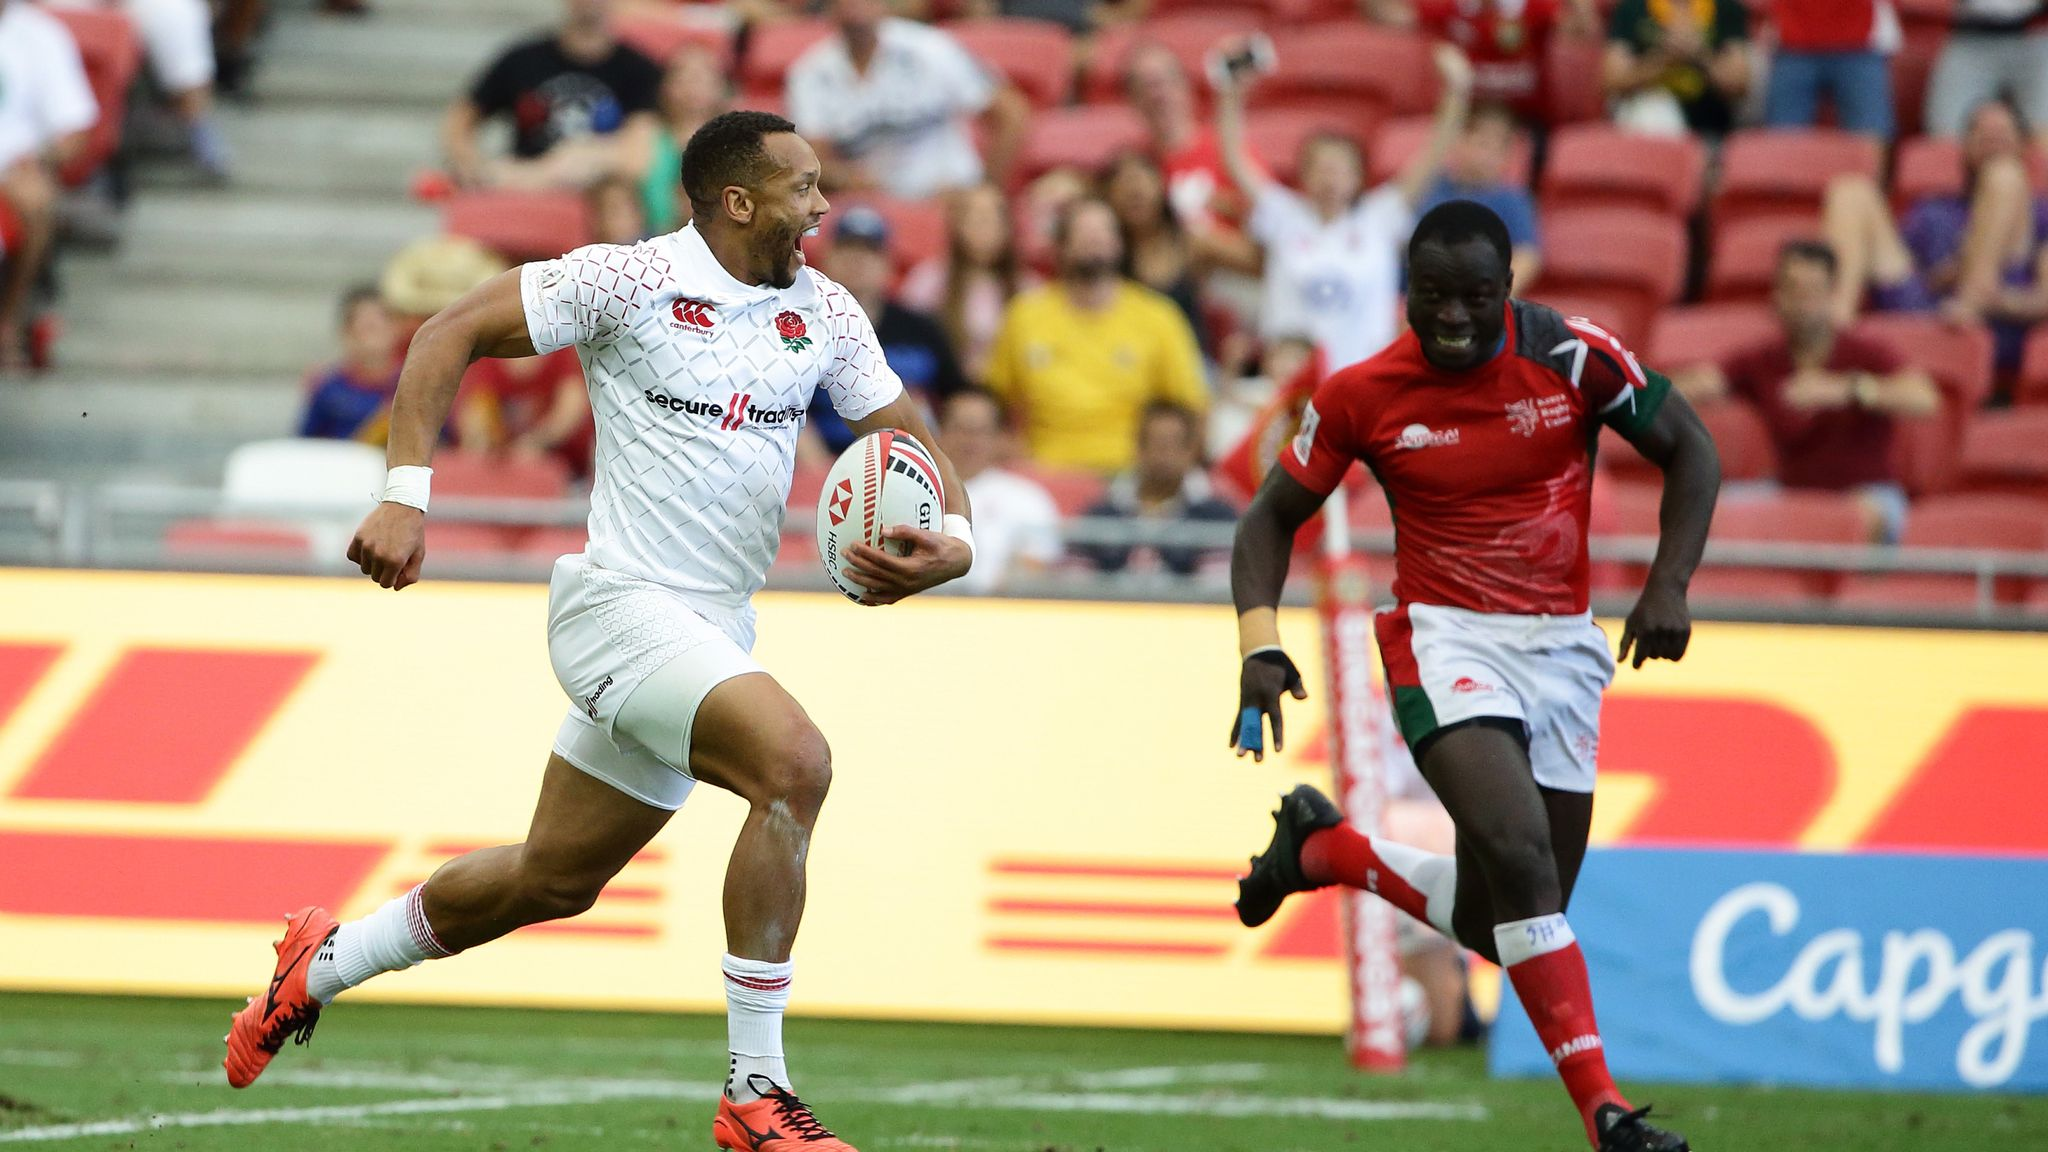 Sky Live: HSBC World Rugby Sevens London preview | Rugby